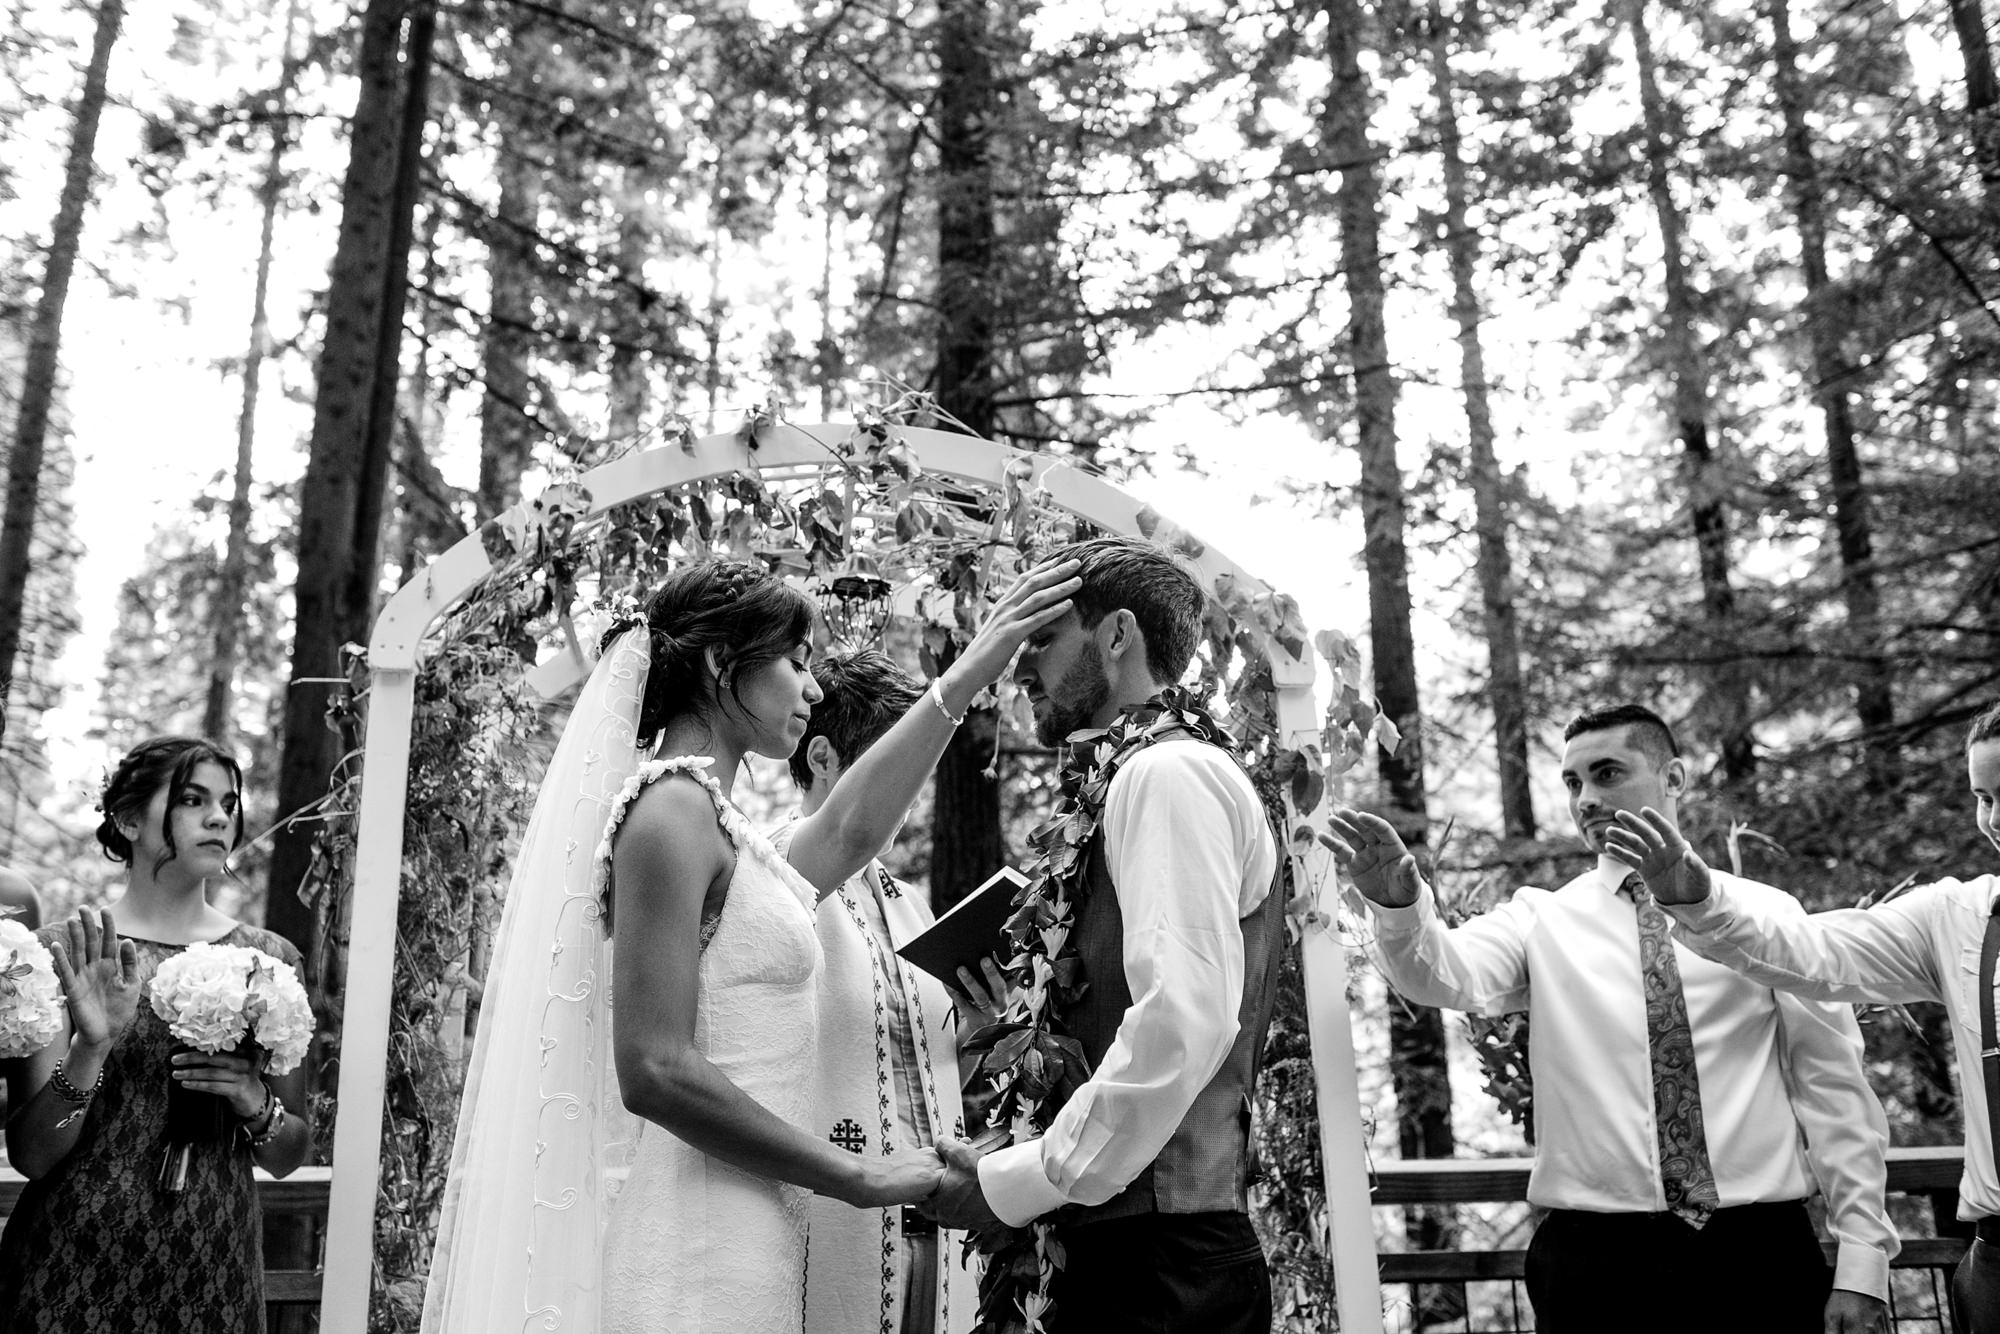 Praying for groom during ceremony - Jessica Hill Photography